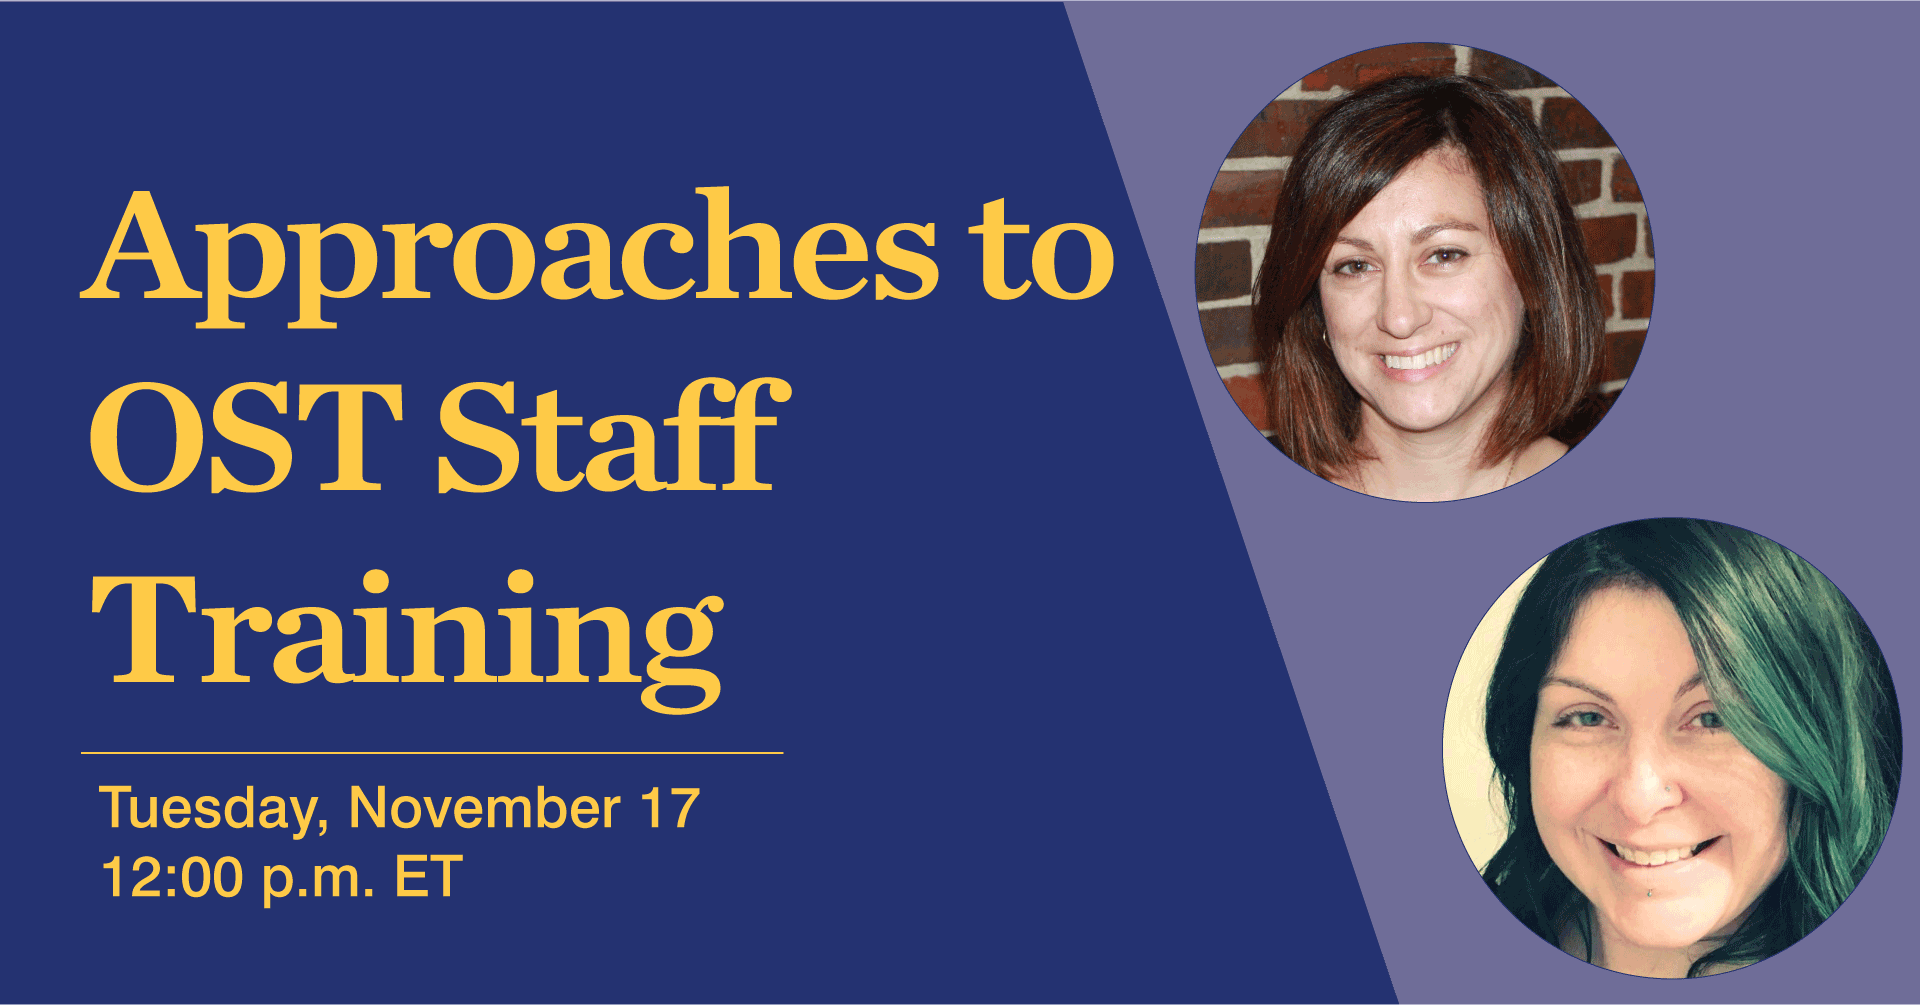 Approaches to OST Staff Training